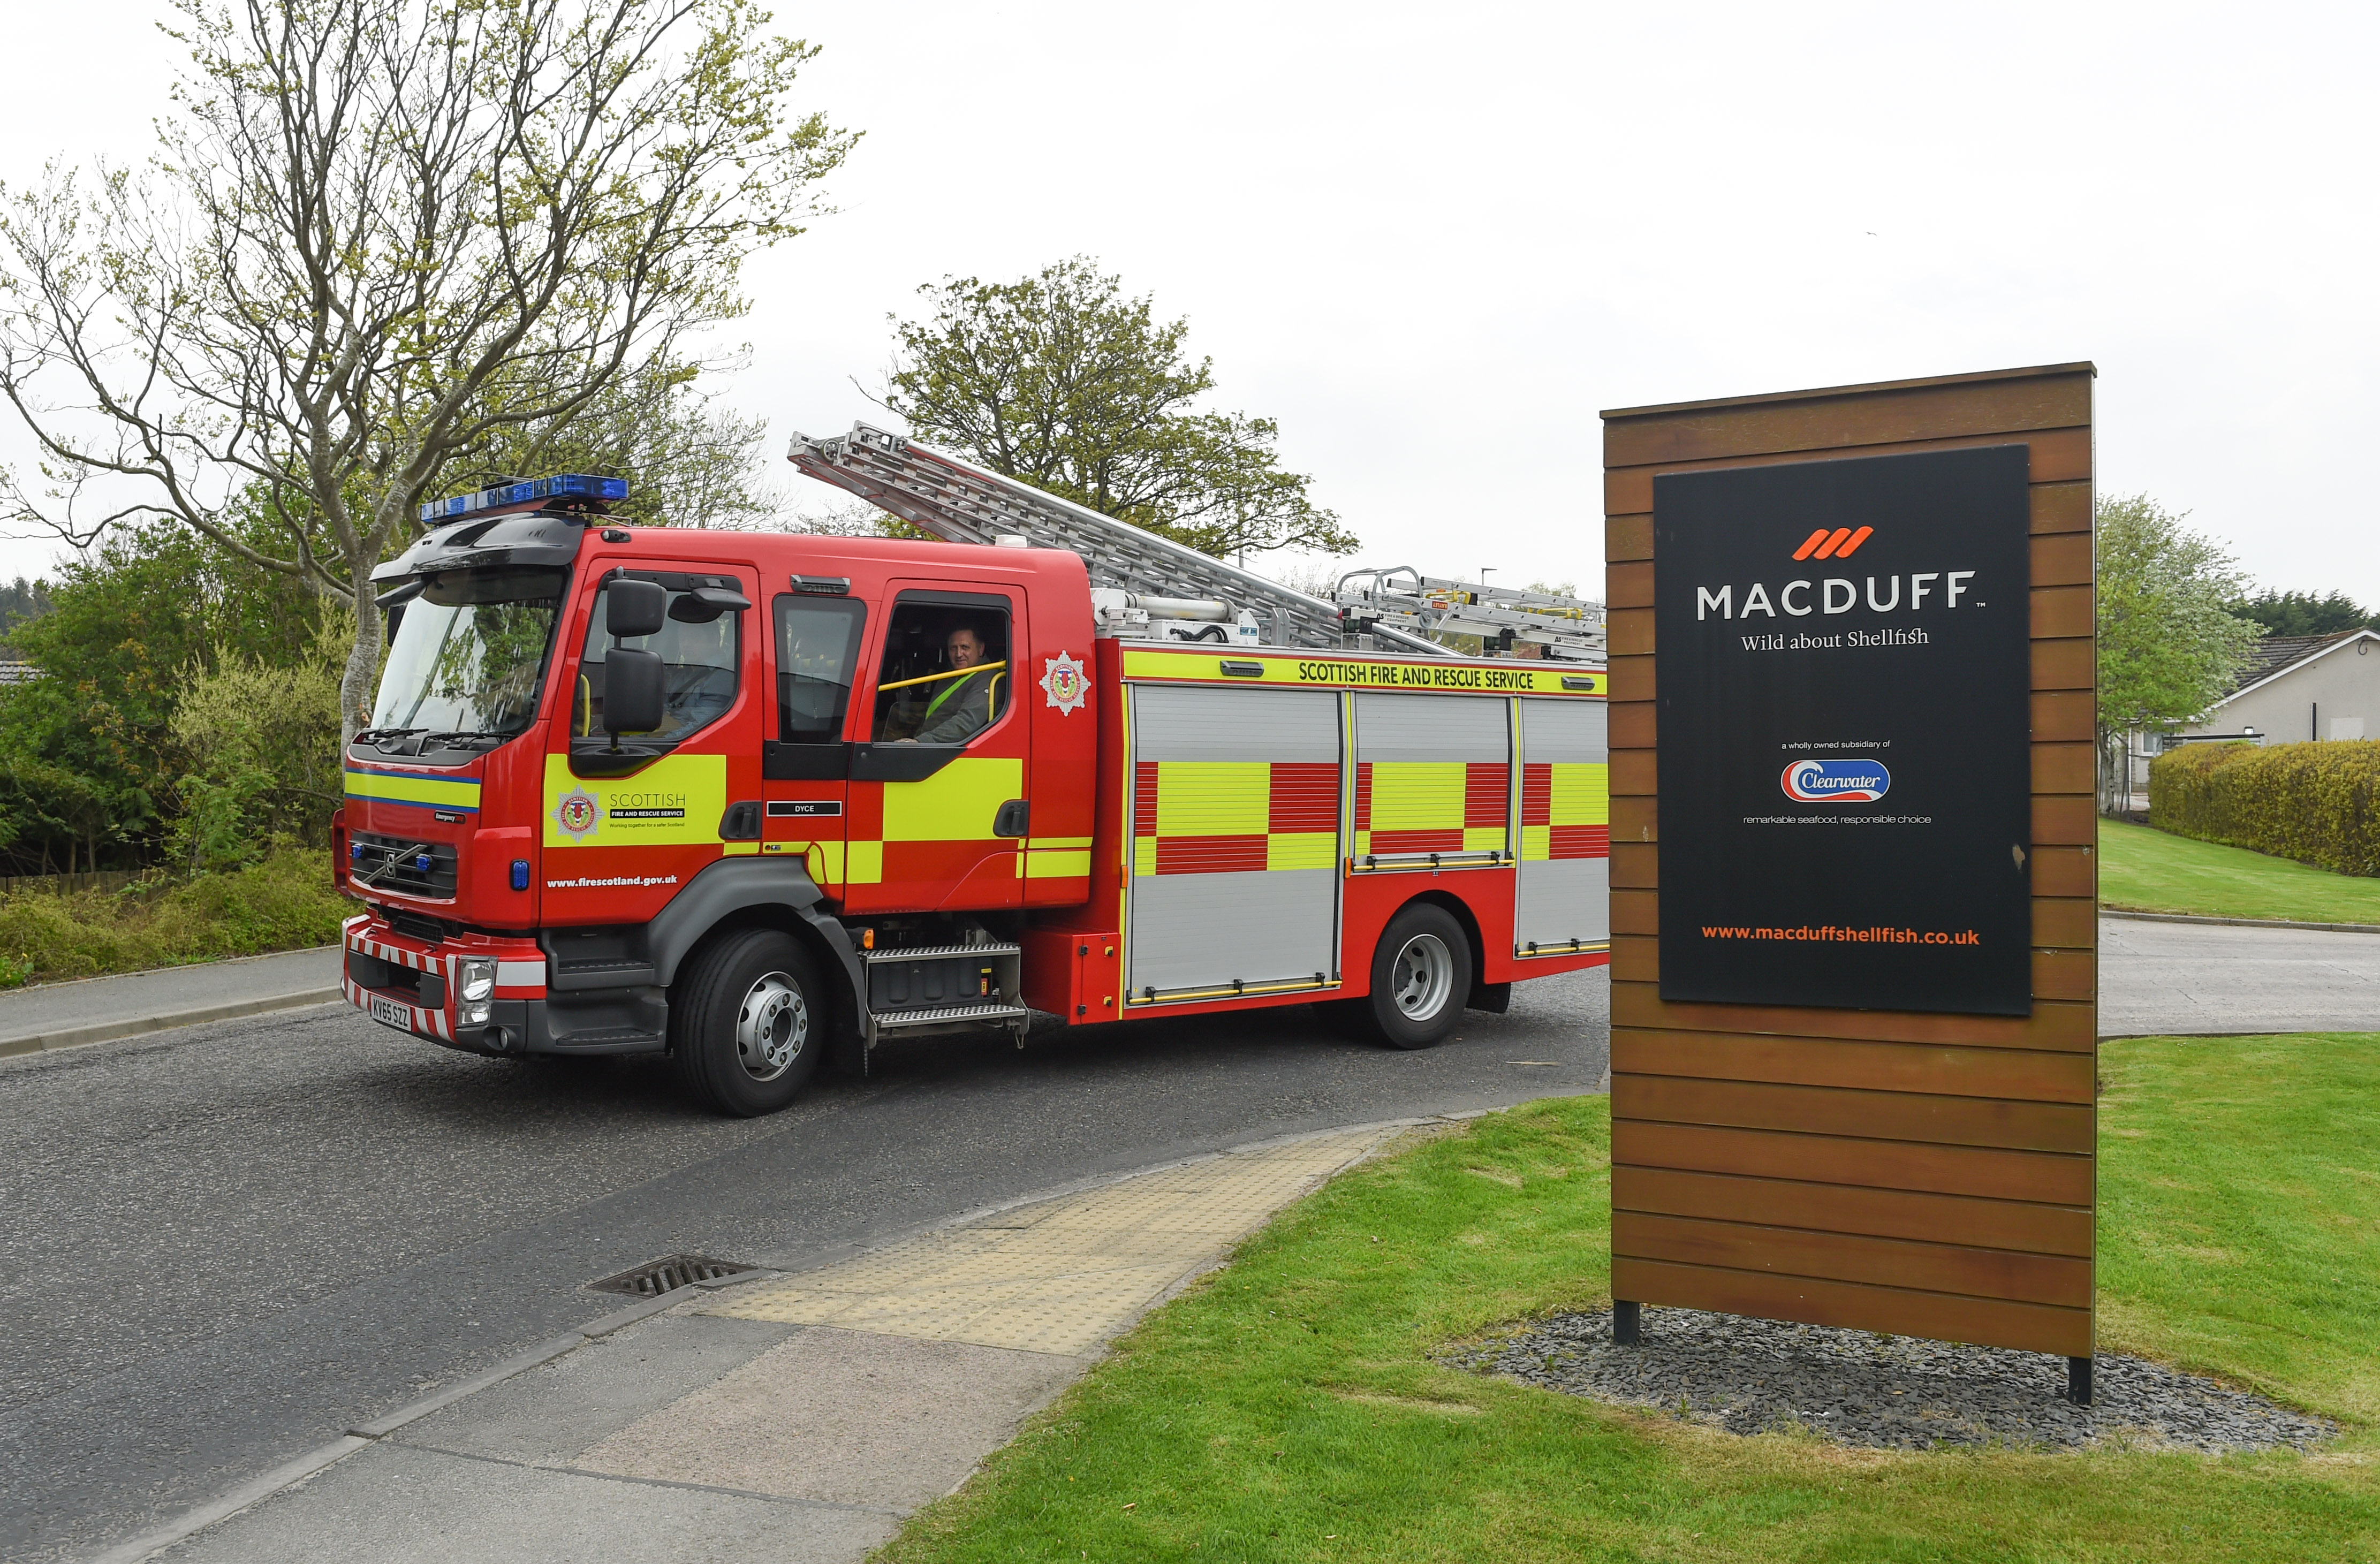 Fire crews leaving the scene of the ammonia gas leak at Macduff Shellfish in Mintlaw, Aberdeenshire, in May